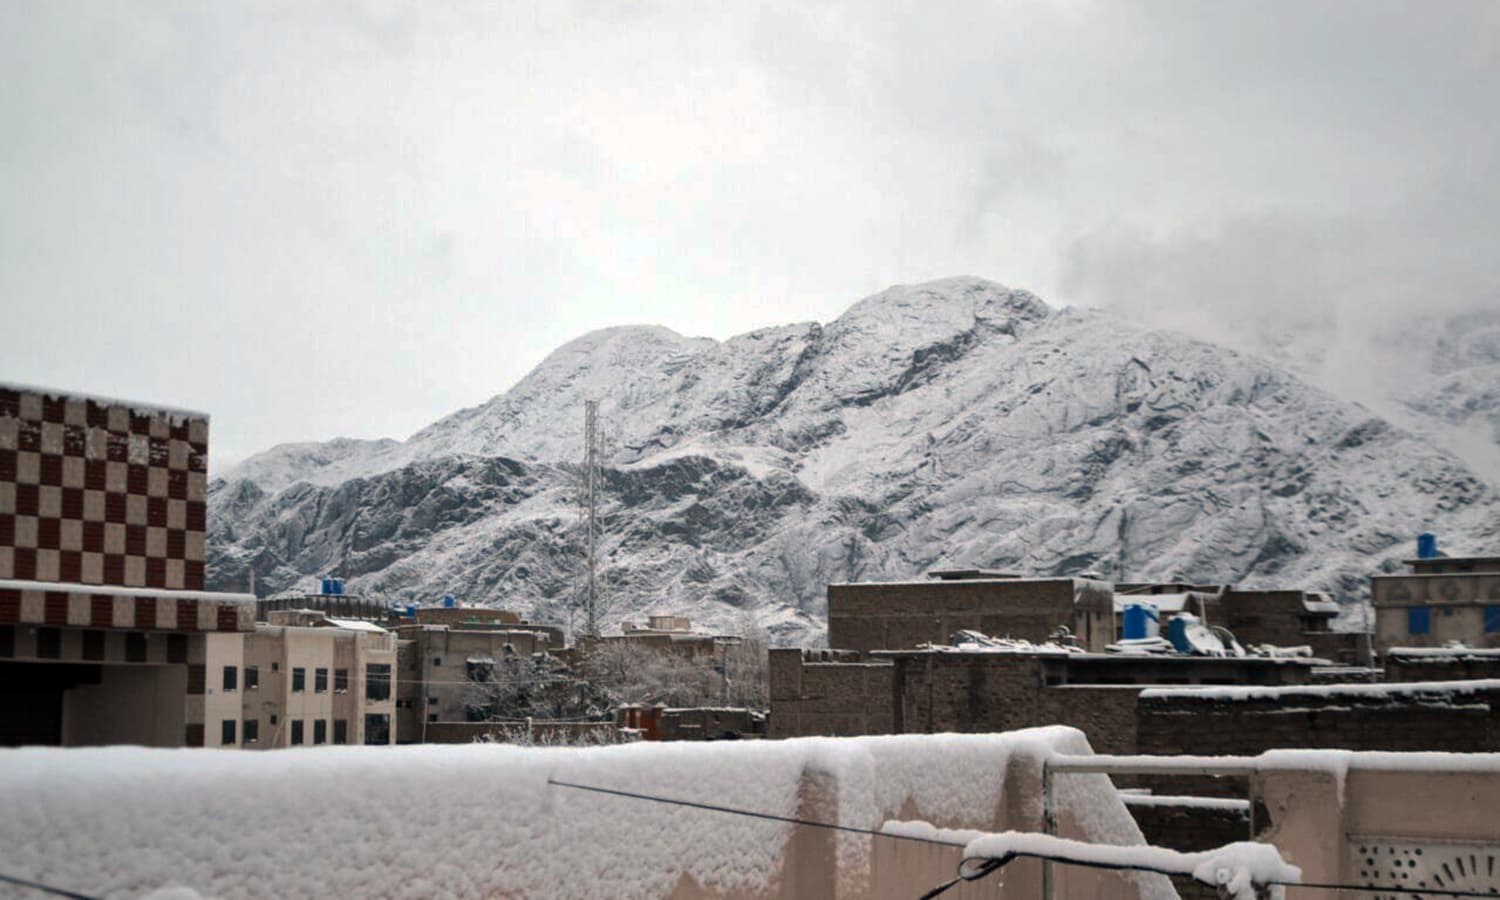 A view of the snow-capped peaks surrounding Quetta.— Photo by Asmatullah Kakar